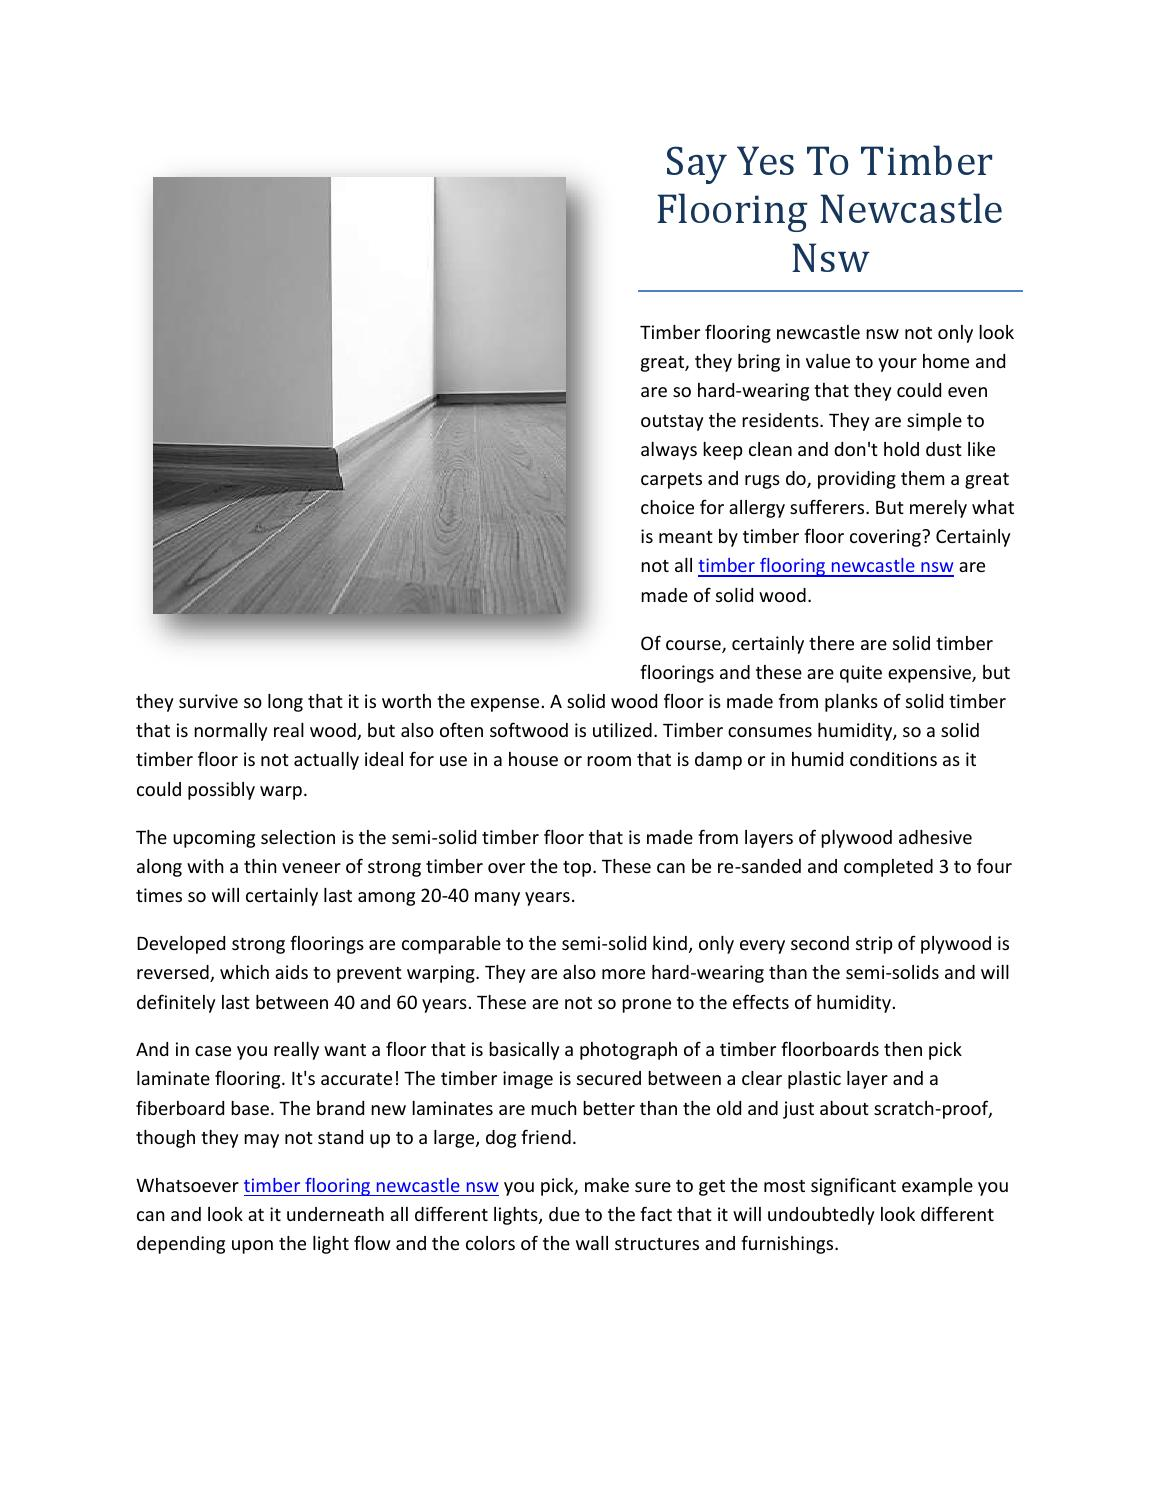 Say Yes To Timber Flooring Newcastle Nsw By Lakeside